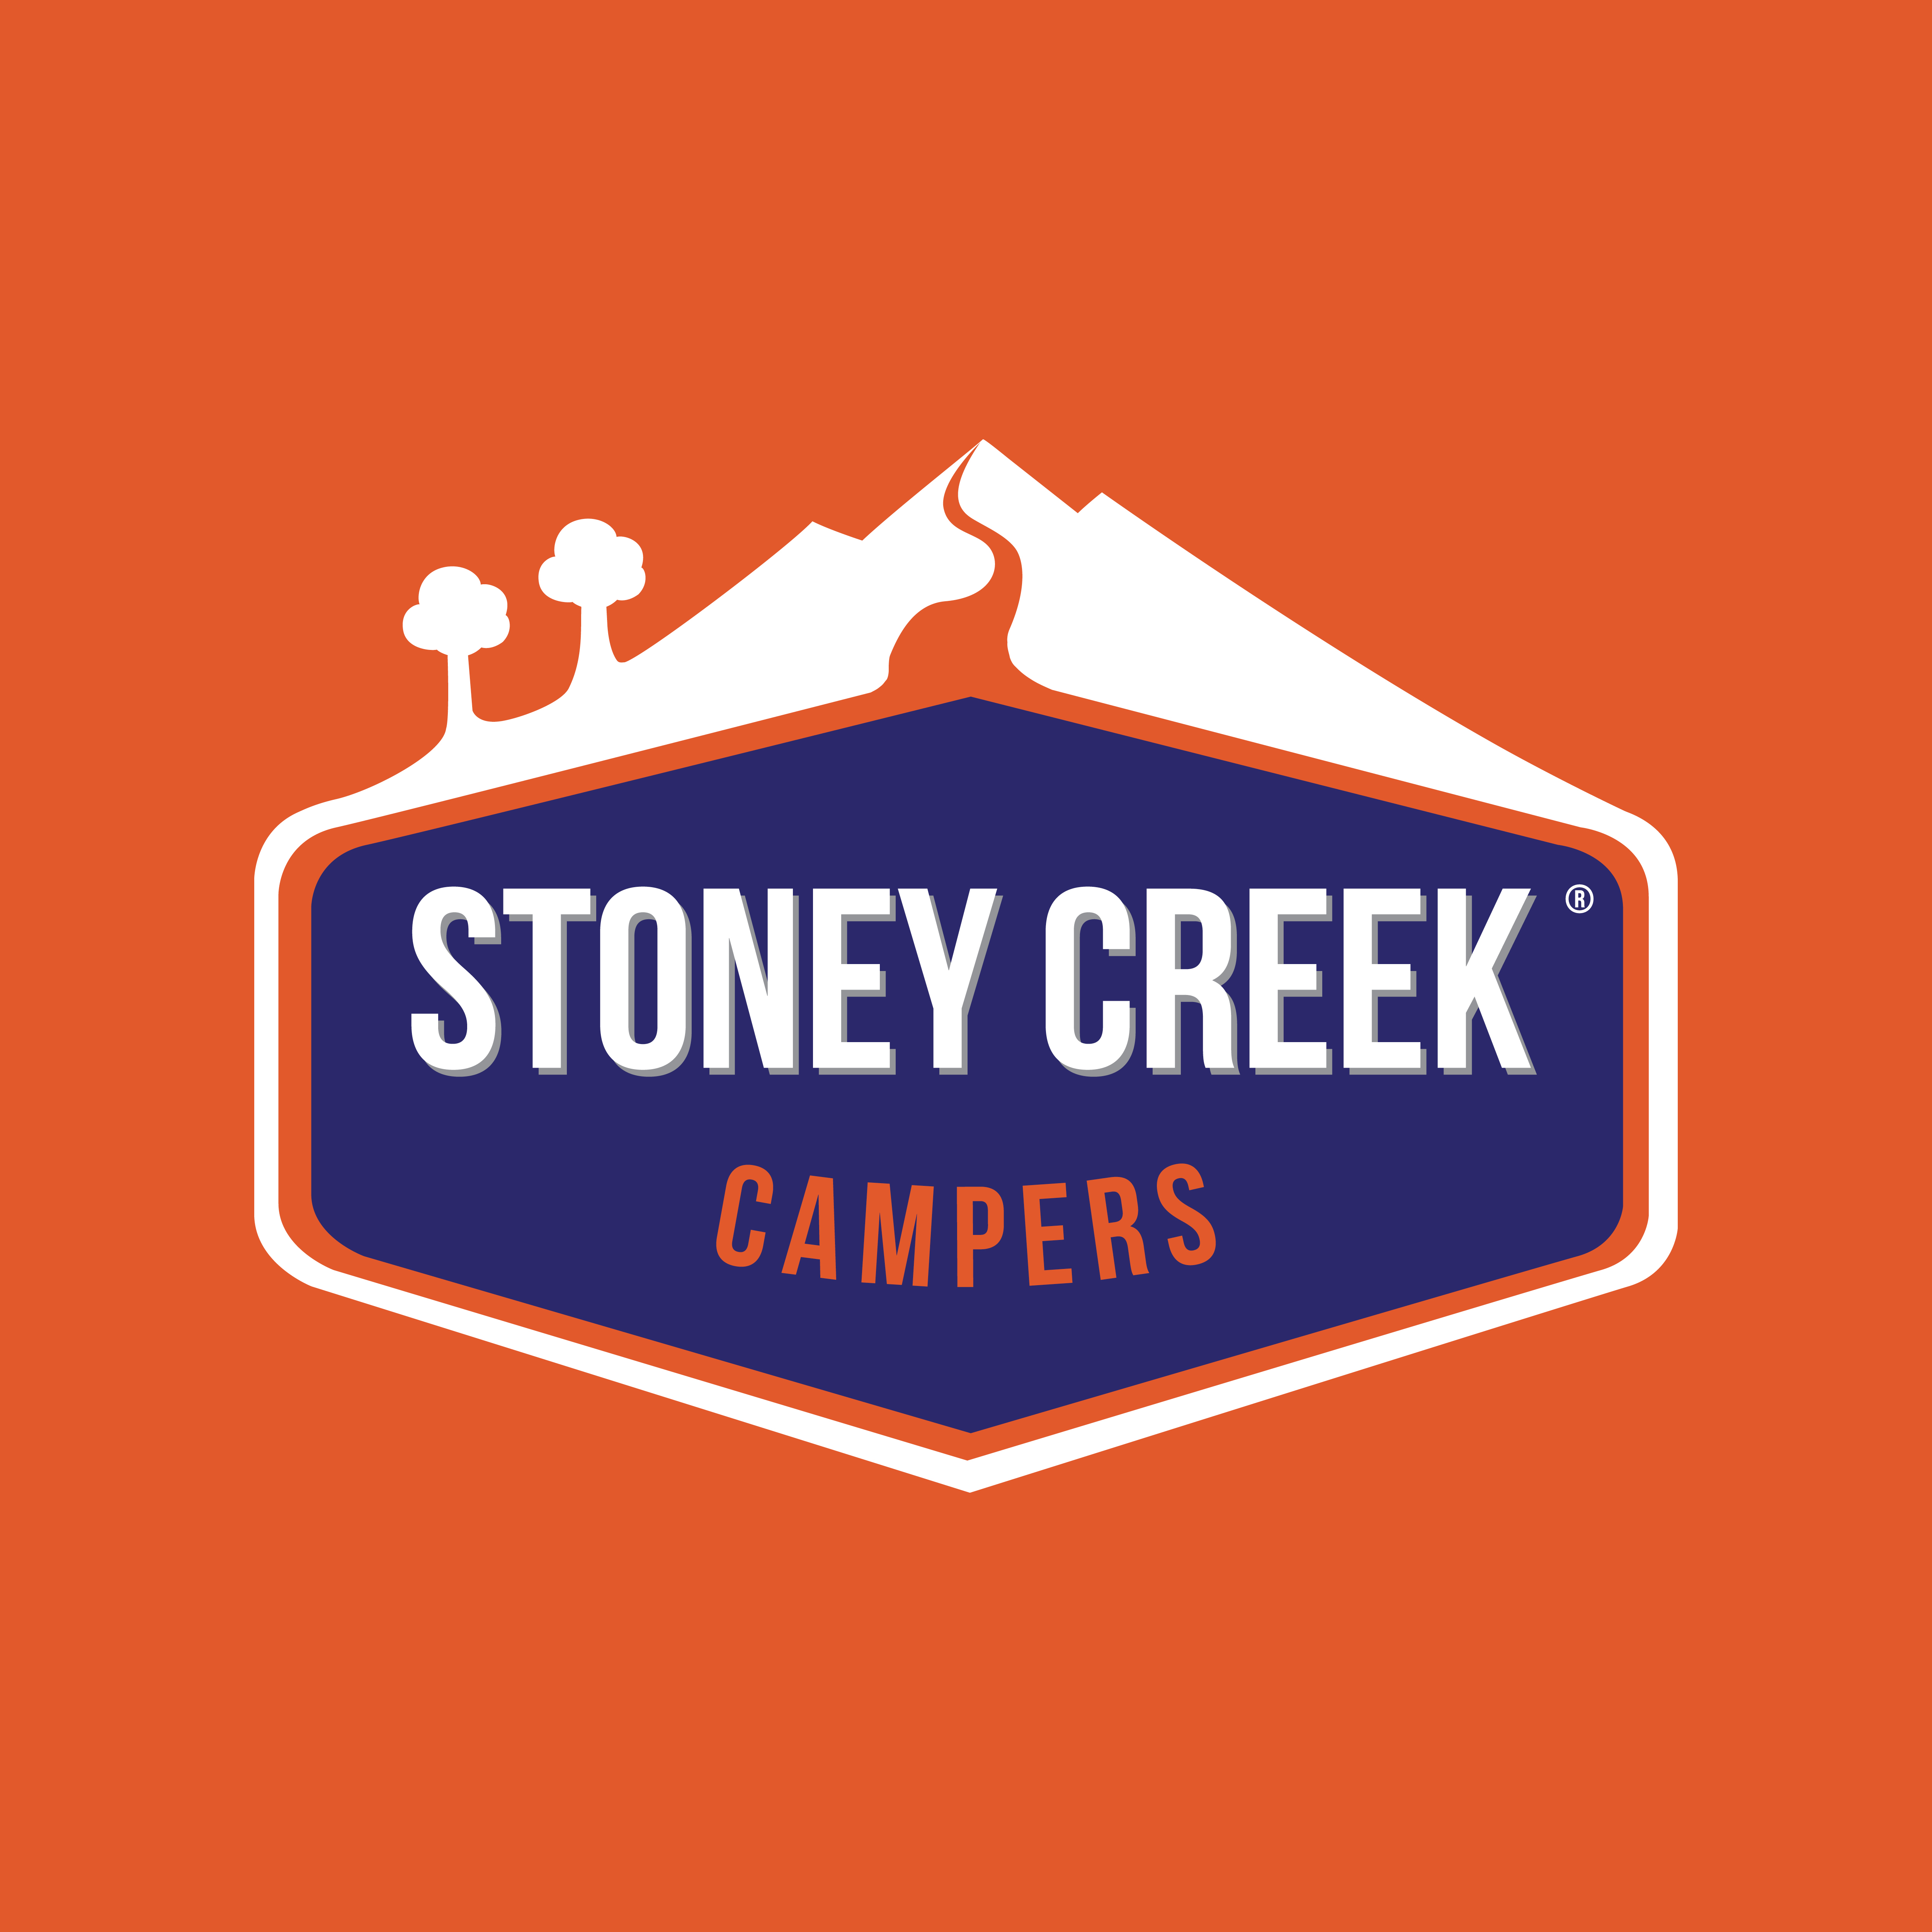 Stoney Creek Campers